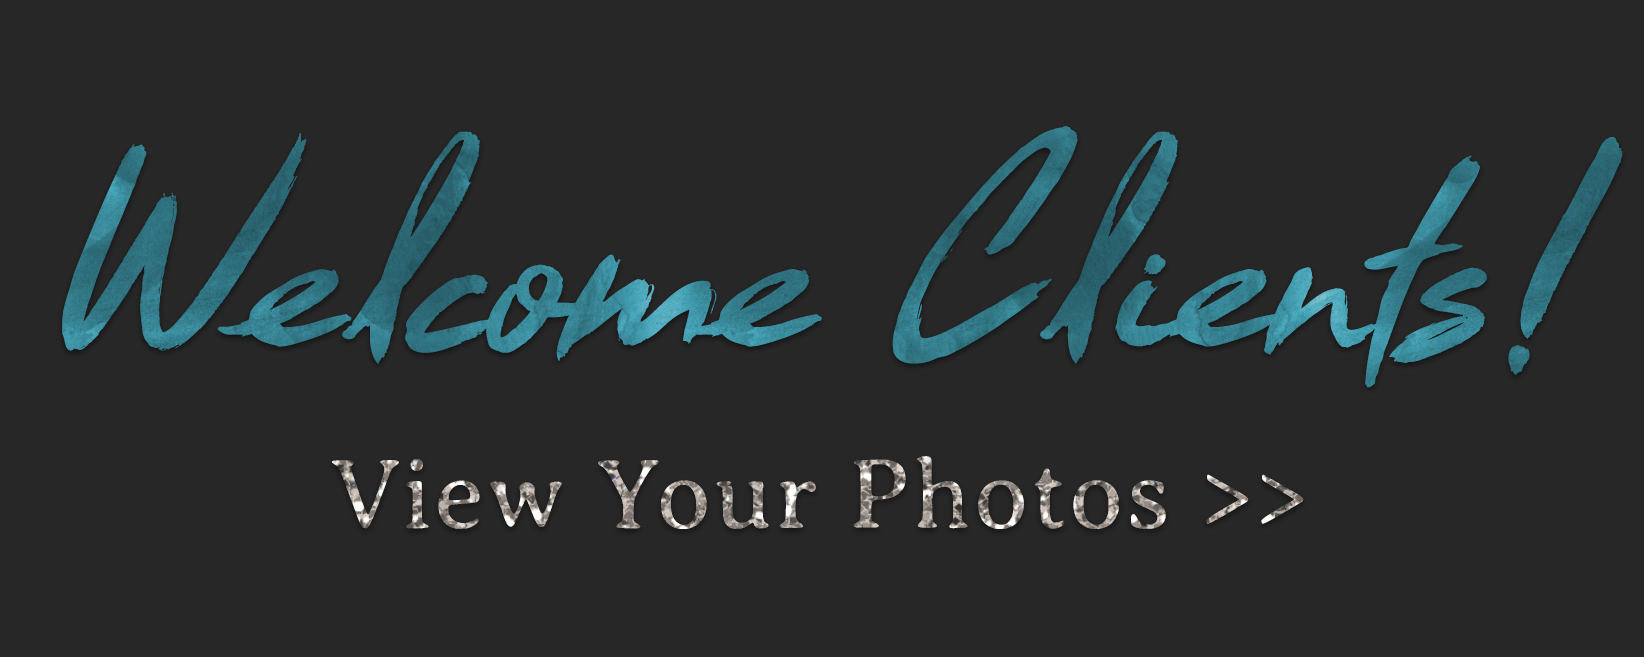 Welcome Clients! View Your Photos